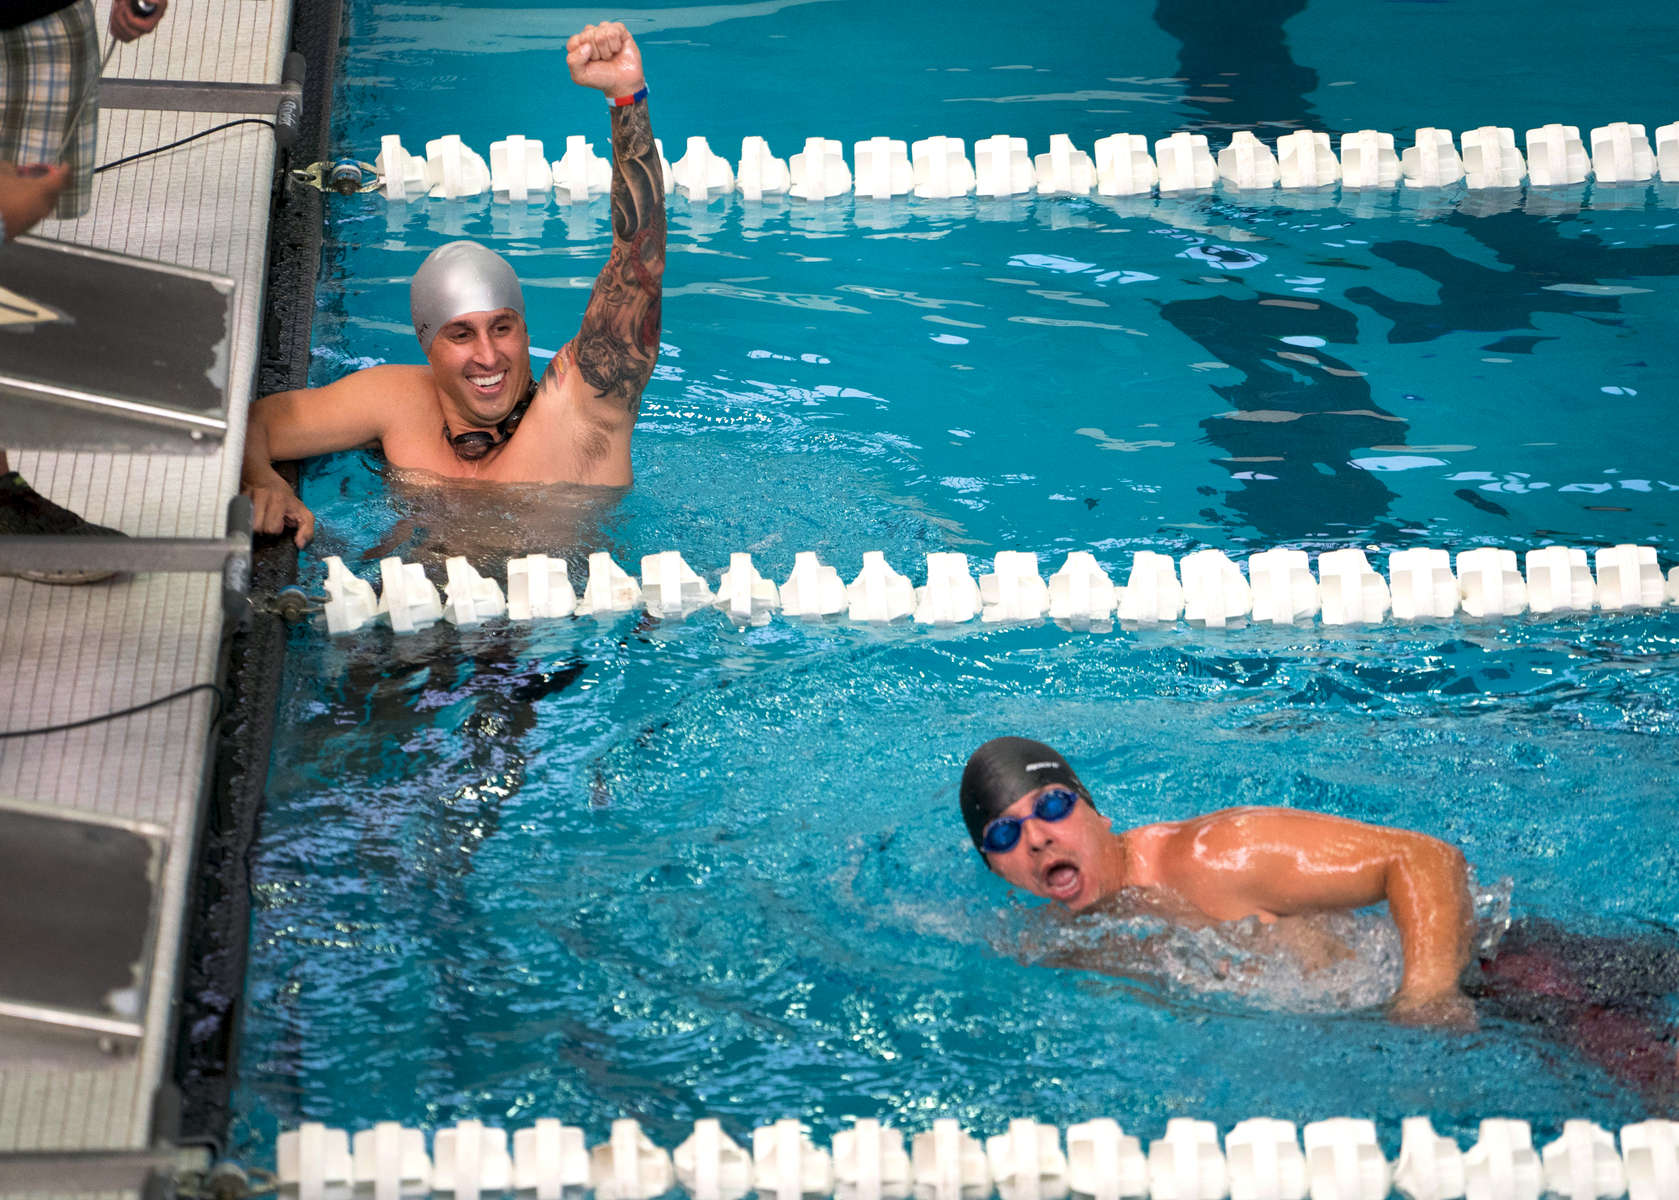 CHICAGO, IL - JULY 08, 2017:   Ramesh Haytasingh of the SOCOM team cheers on Jonathan Gonzalez of the Marine Corps during a race at the Department of Defense Warrior Games at the University of Illinois at Chicago, July 8, 2017 in Chicago, Illinois.  Gonzalez only has the use of one arm for swimming.  (Alex Garcia for ESPN)